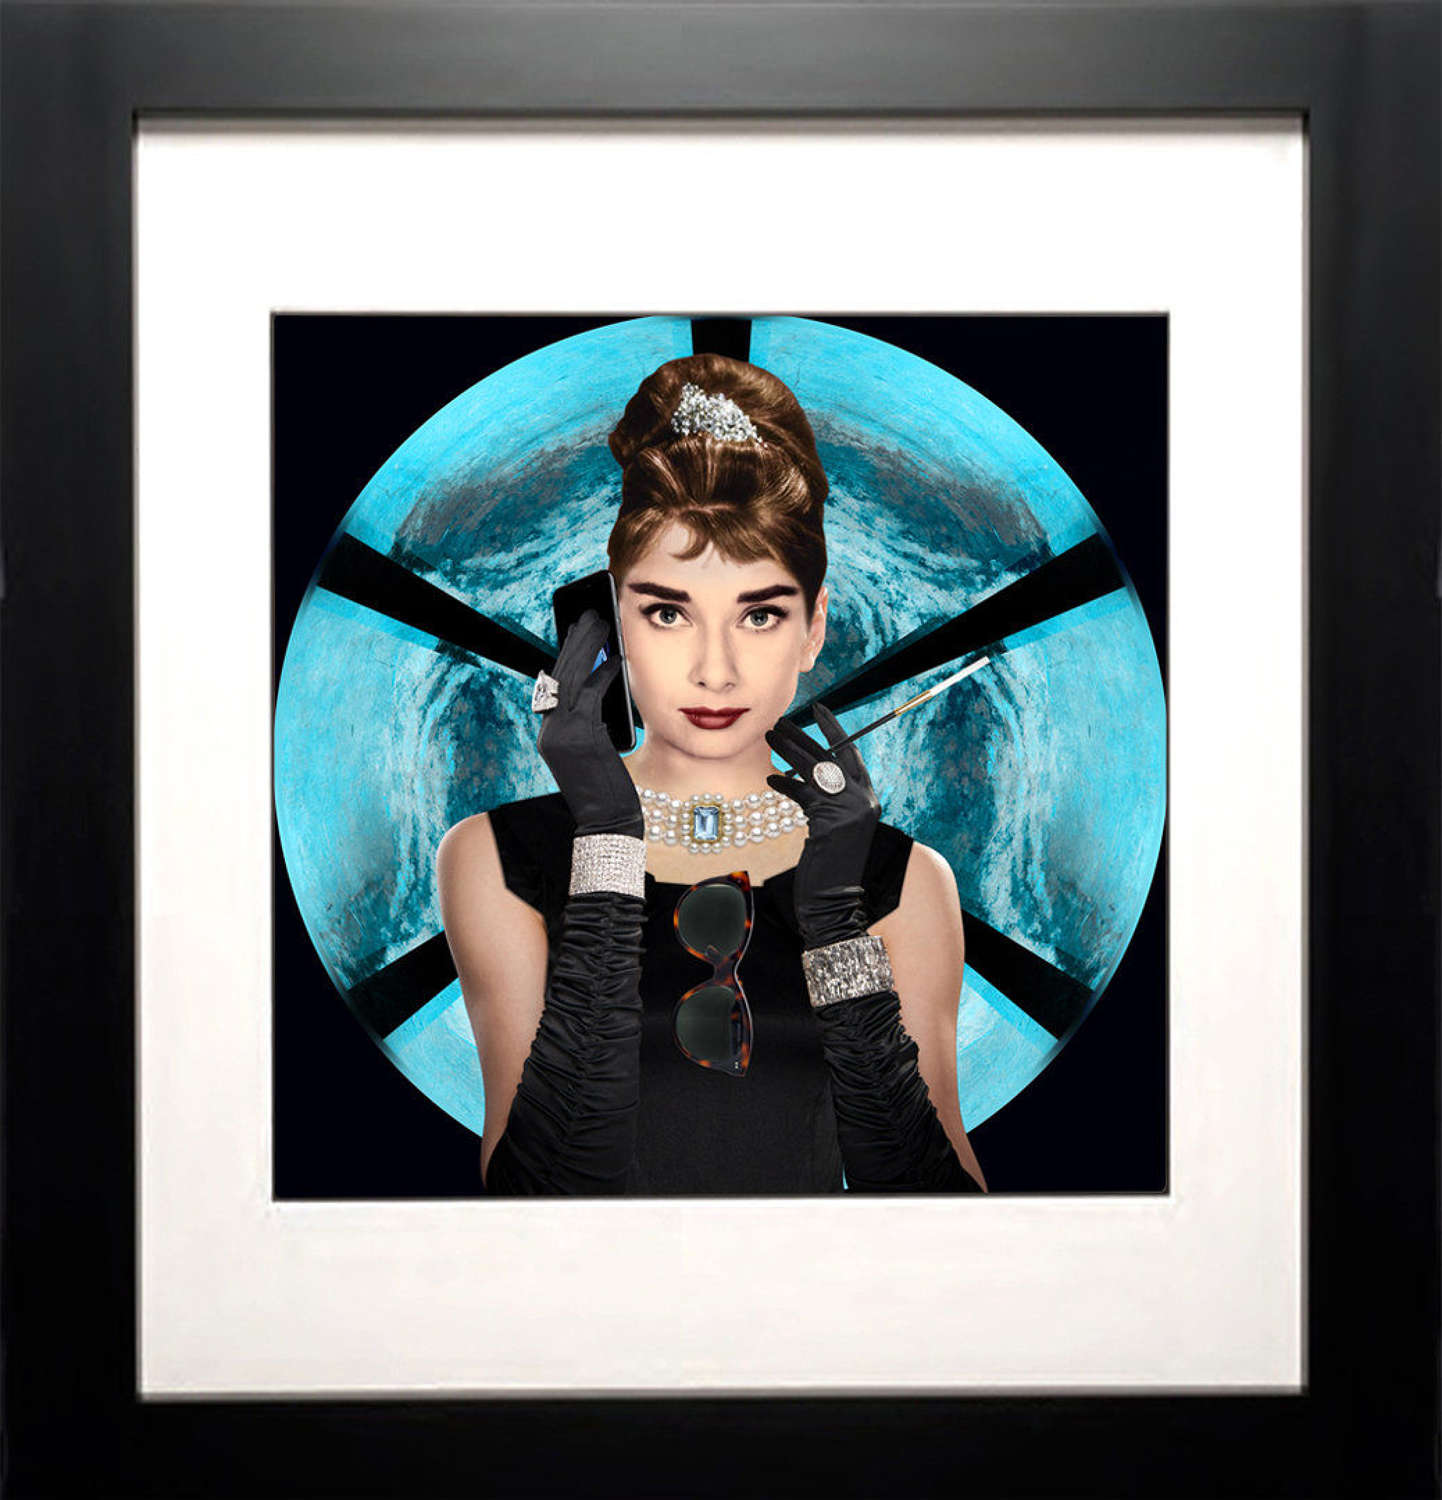 Tiffany Calling by Chloe Rox Framed Art Print by artist Chloe Rox